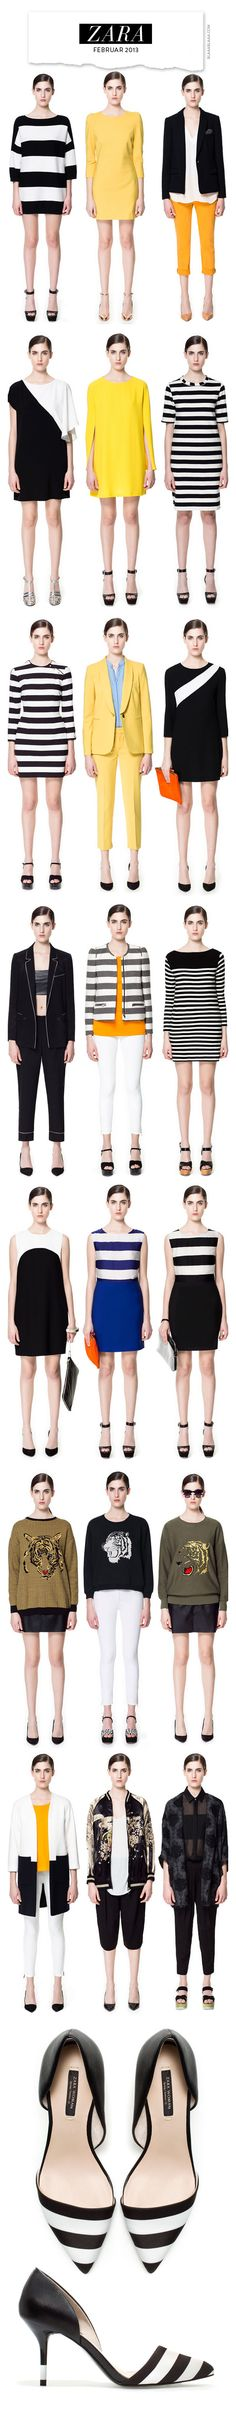 black and white, stripes and solids  love all the stripes!